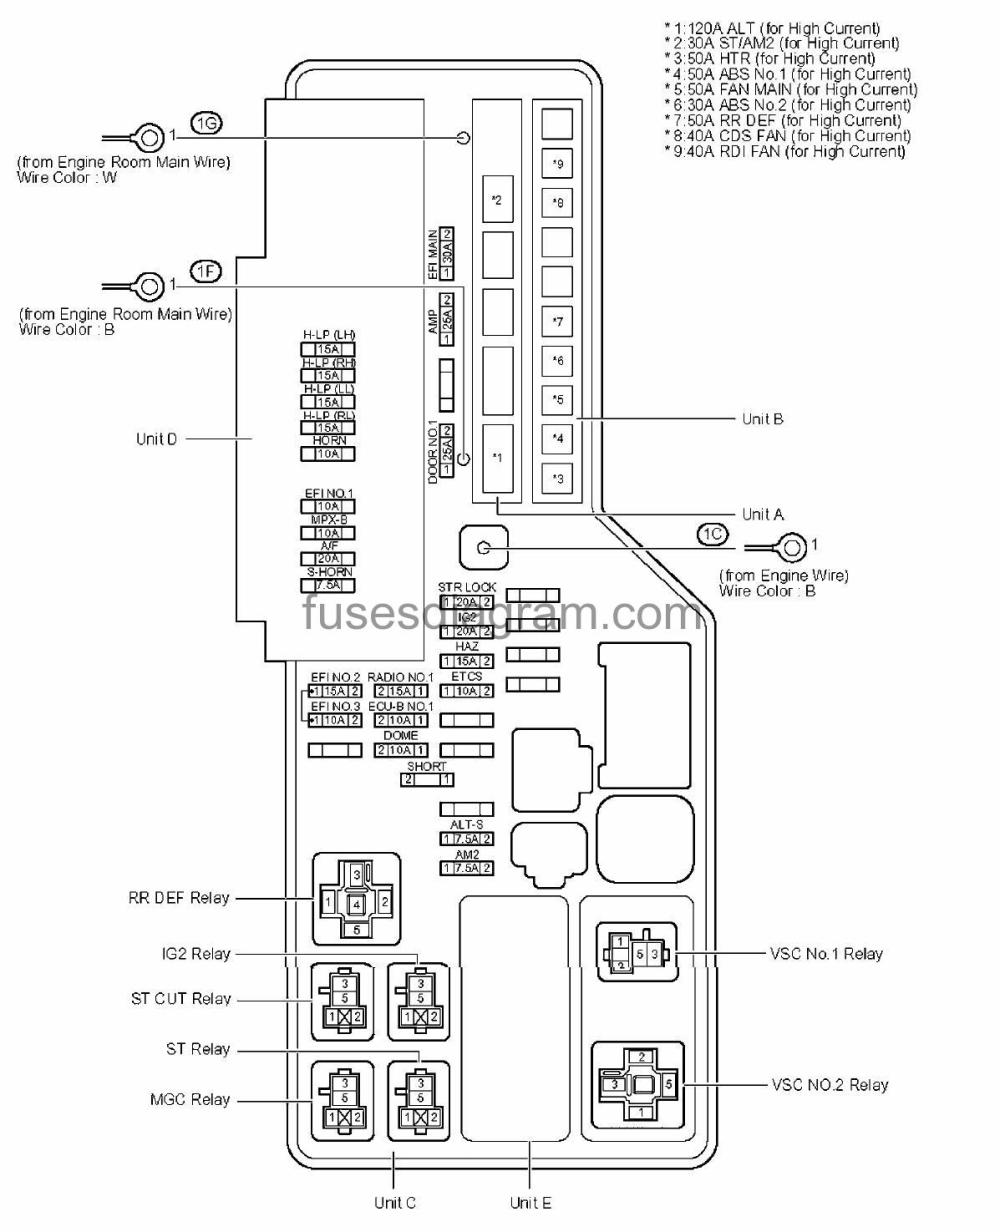 medium resolution of toyota avalon fuse panel diagram wiring diagram pictures 2007 toyota camry fuse box diagram 2000 toyota